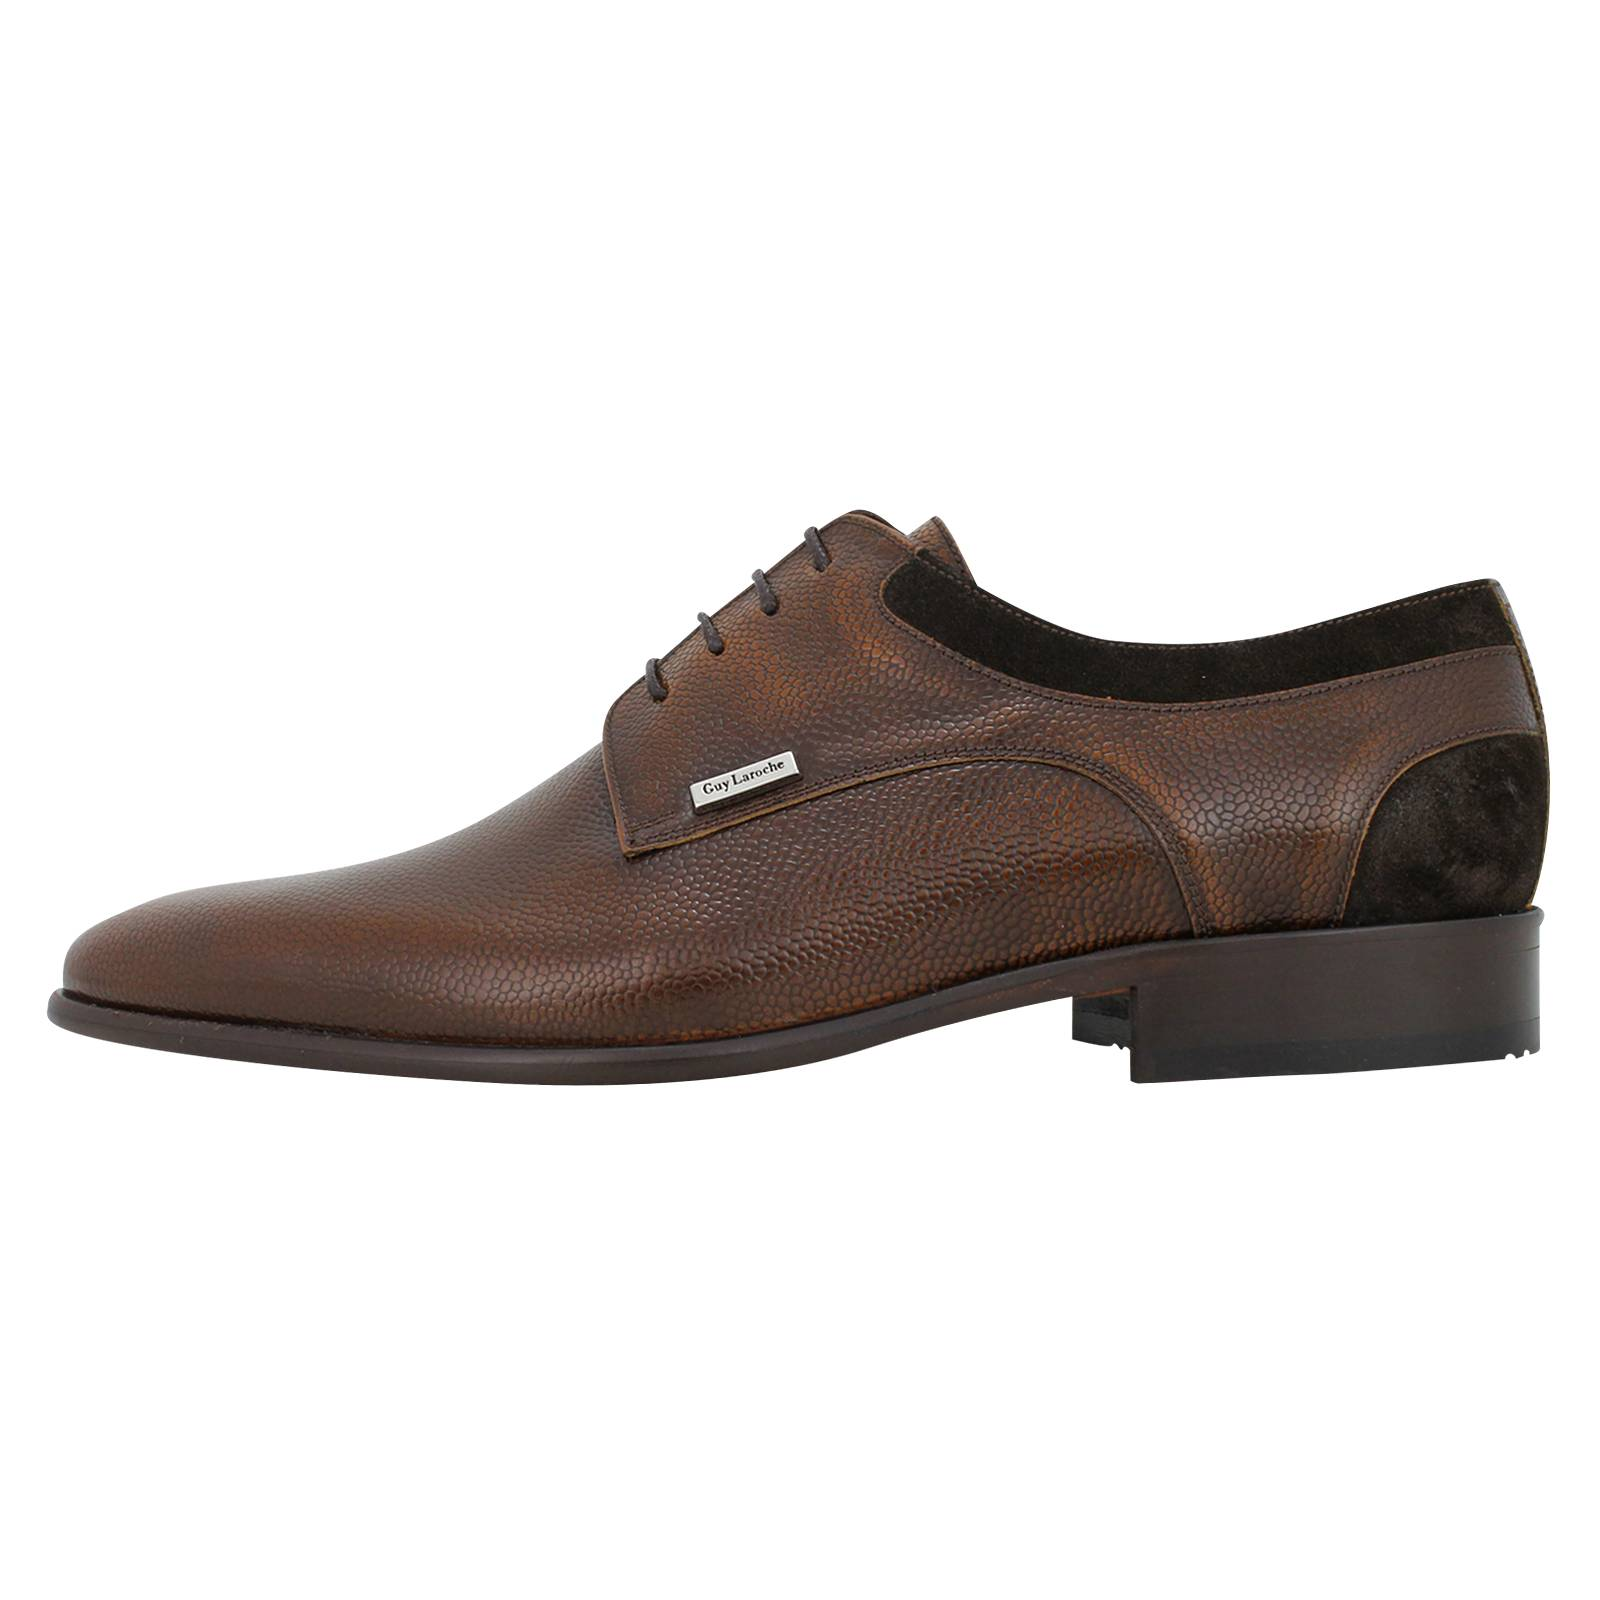 Guy Laroche Men's lace-up shoes made of